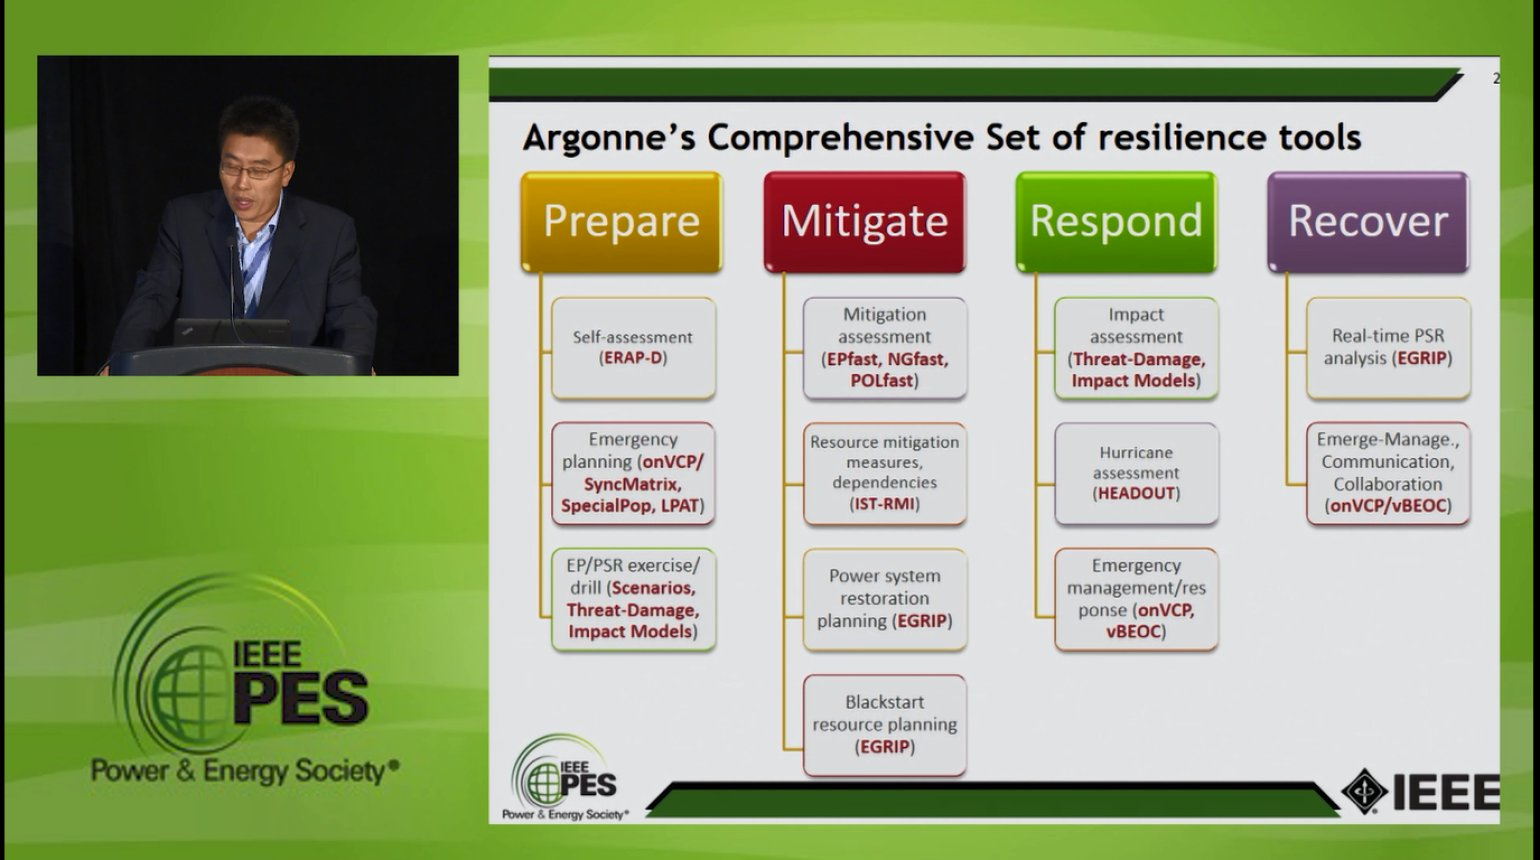 Resiliency in the Power Grid - Decision Support Tools for Power Grid Resilience Improvement (Video)